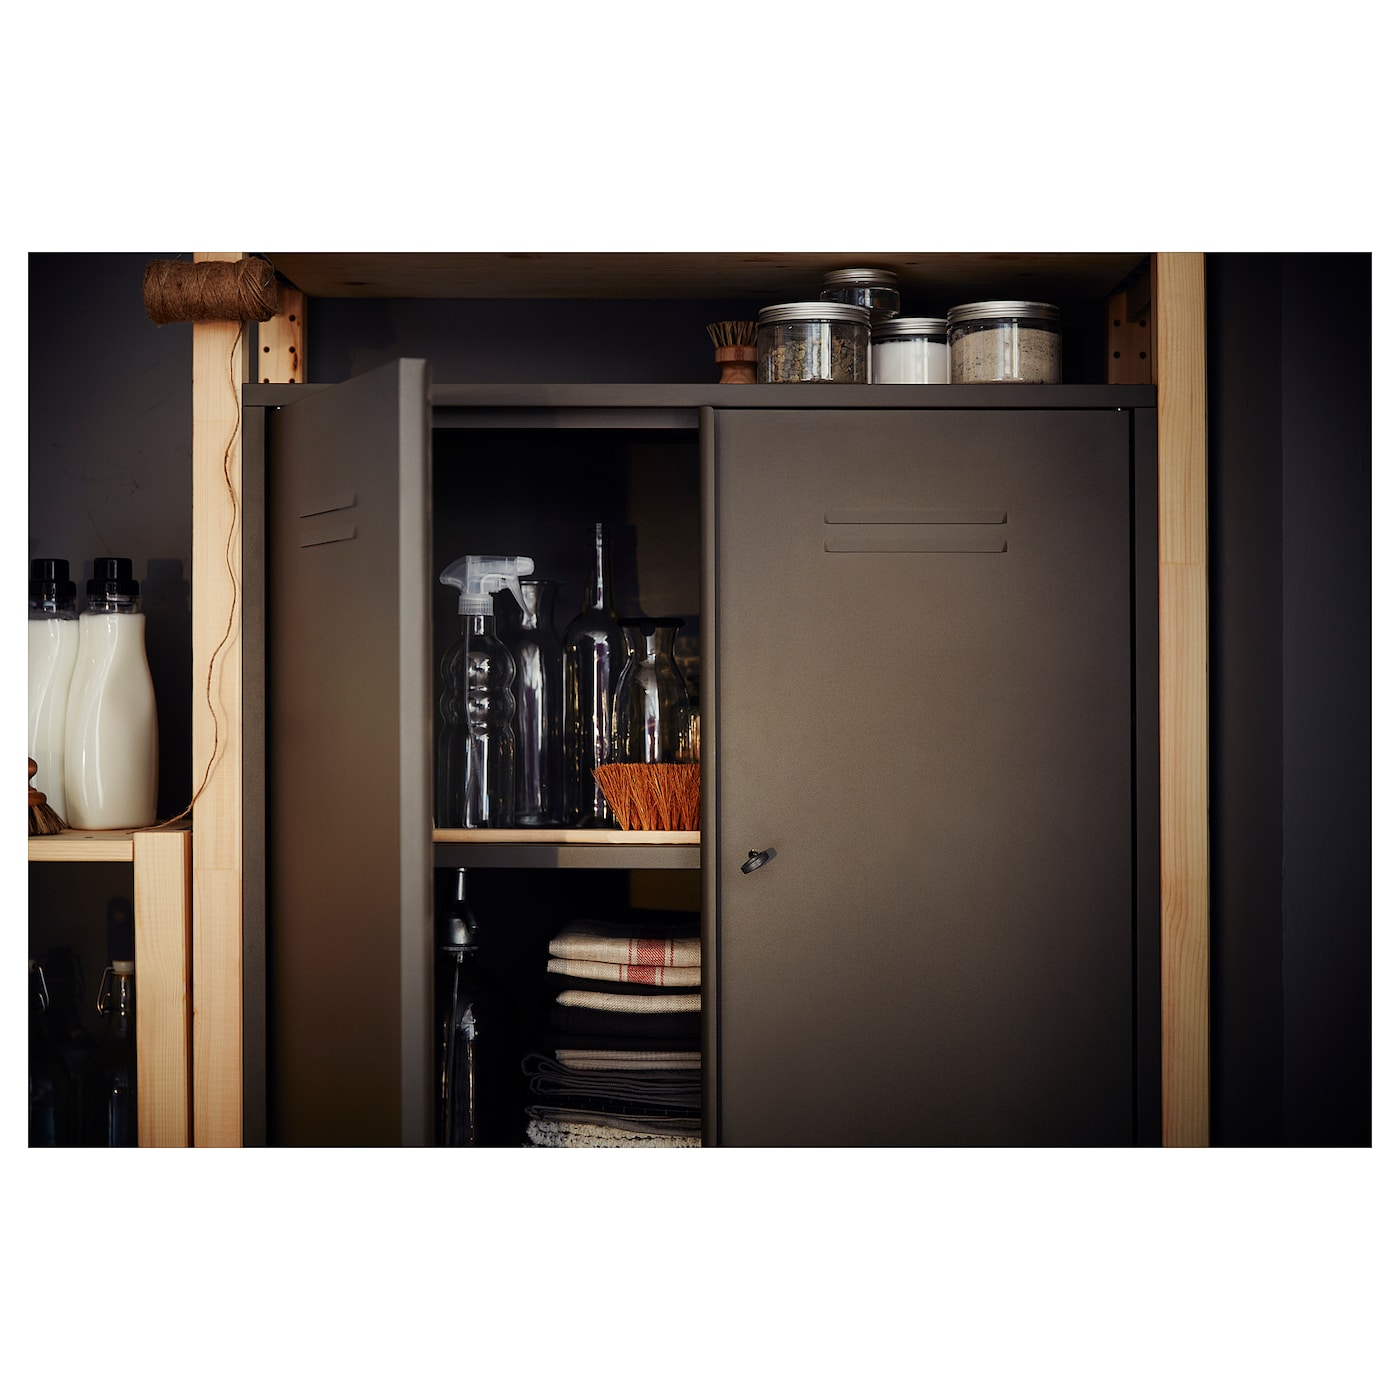 Ikea ivar cabinet with doors you can adapt the inside when needed by moving the shelf